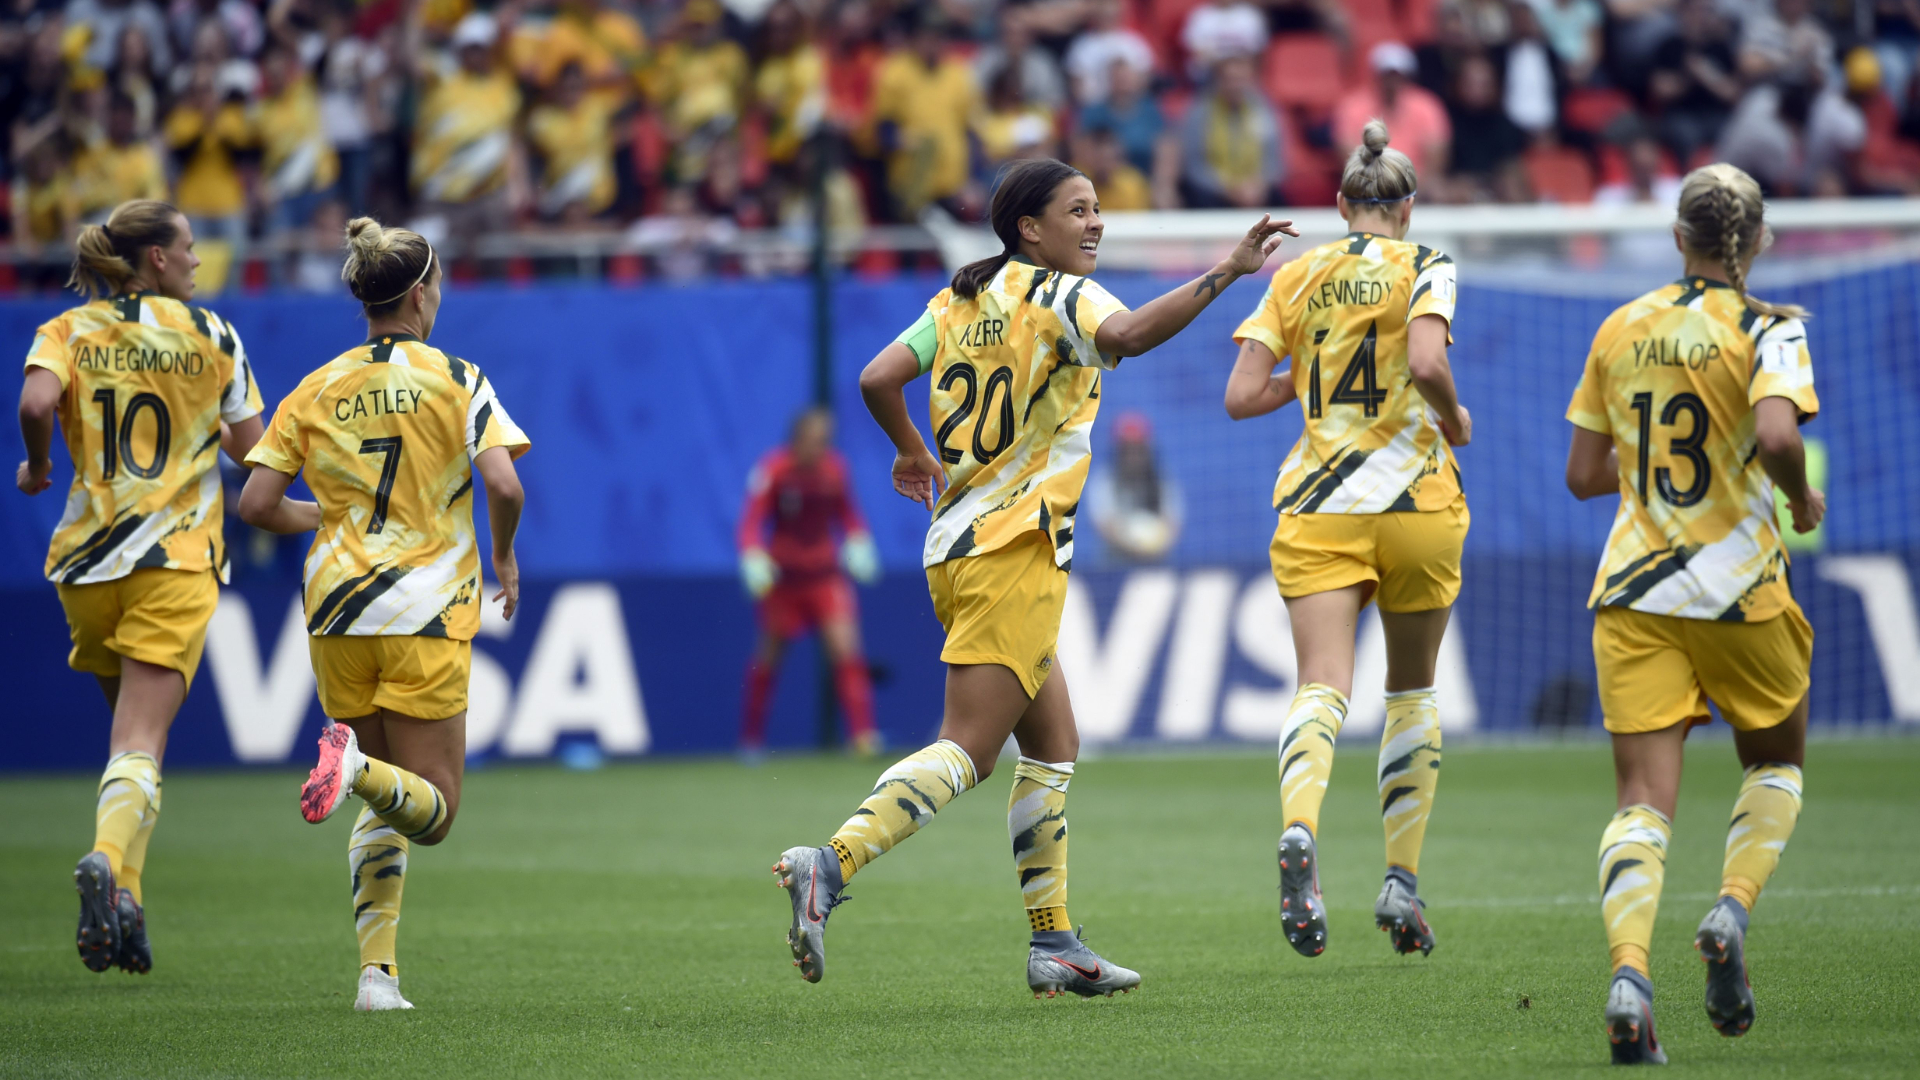 Late drama as Italy stun Australia at Women's World Cup